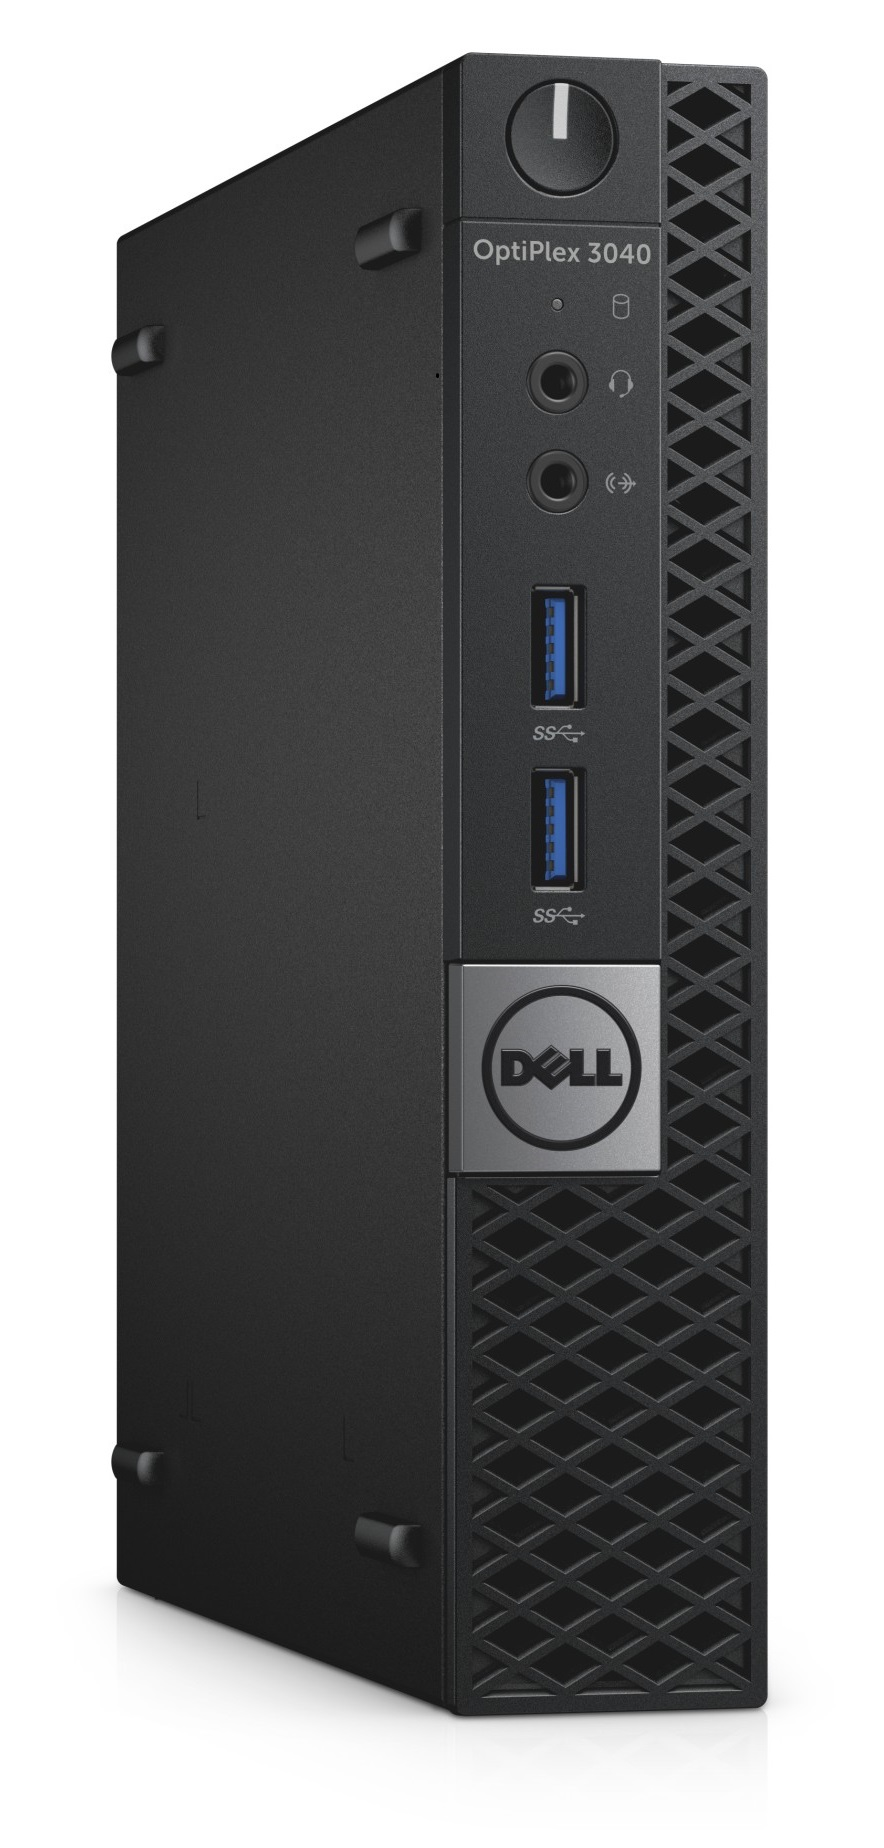 DELL OptiPlex MFF 3040 i3-6100T/4GB/128GB/Wifi/Win7 PRO - Win 10 Pro 64bit/3Yr NBD